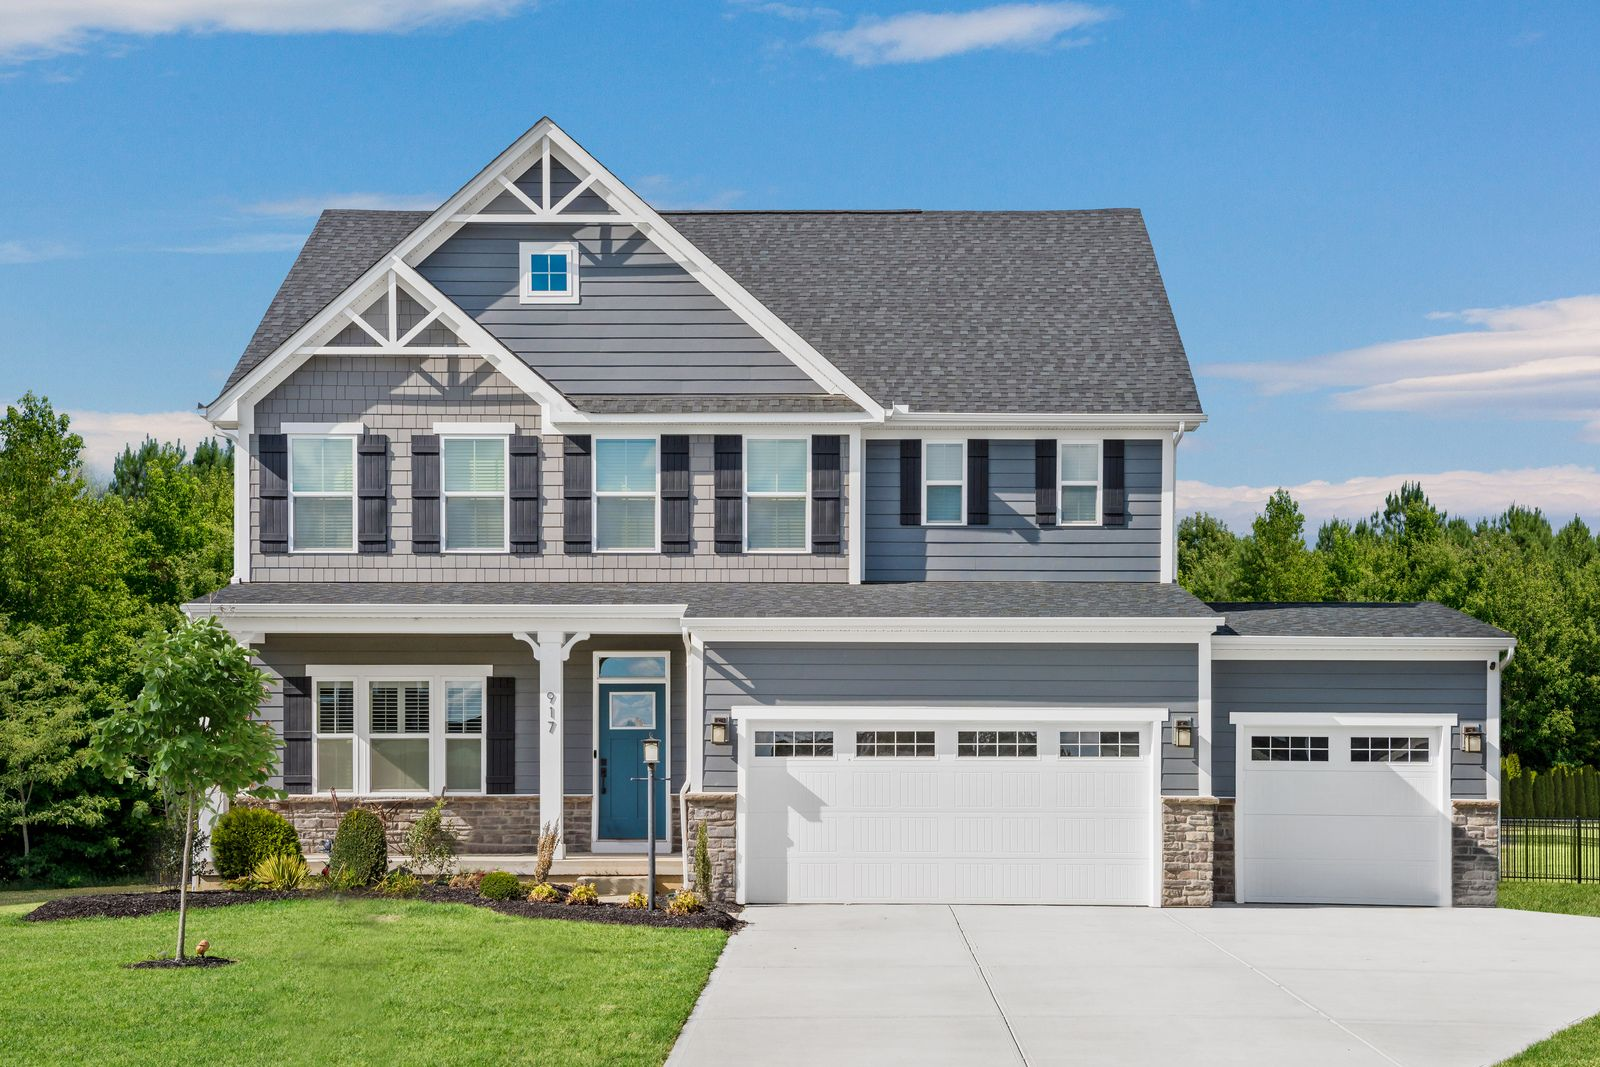 New Homes close to South Charlotte for an Amazing Value:You can live close to Ballantyne AND get a brand new home on a spacious homesite.Schedule an appointment!